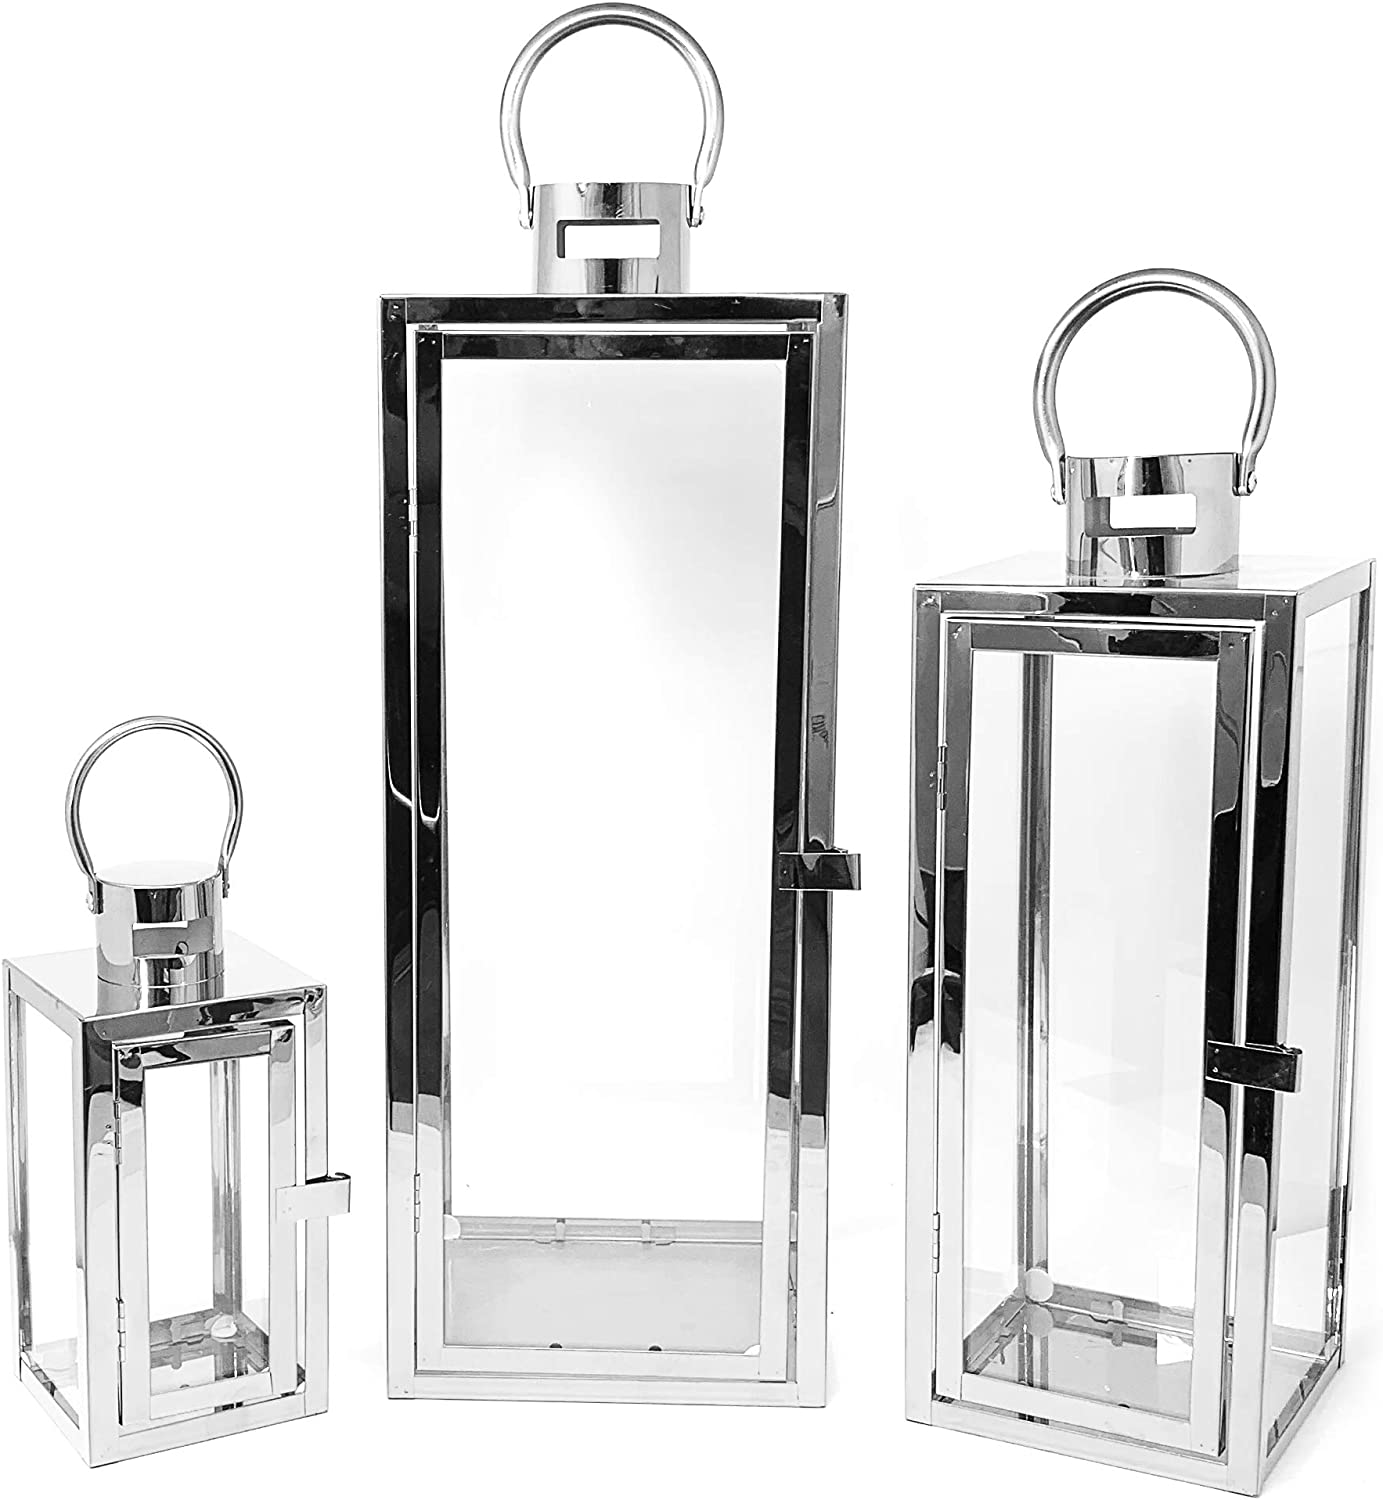 allgala 3-PC Set Jumbo Luxury Modern Indoor/Outdoor Hurricane Candle Lantern Set with Chrome Plated Structure and Tempered Glass-Cuboid Silver-HD88012